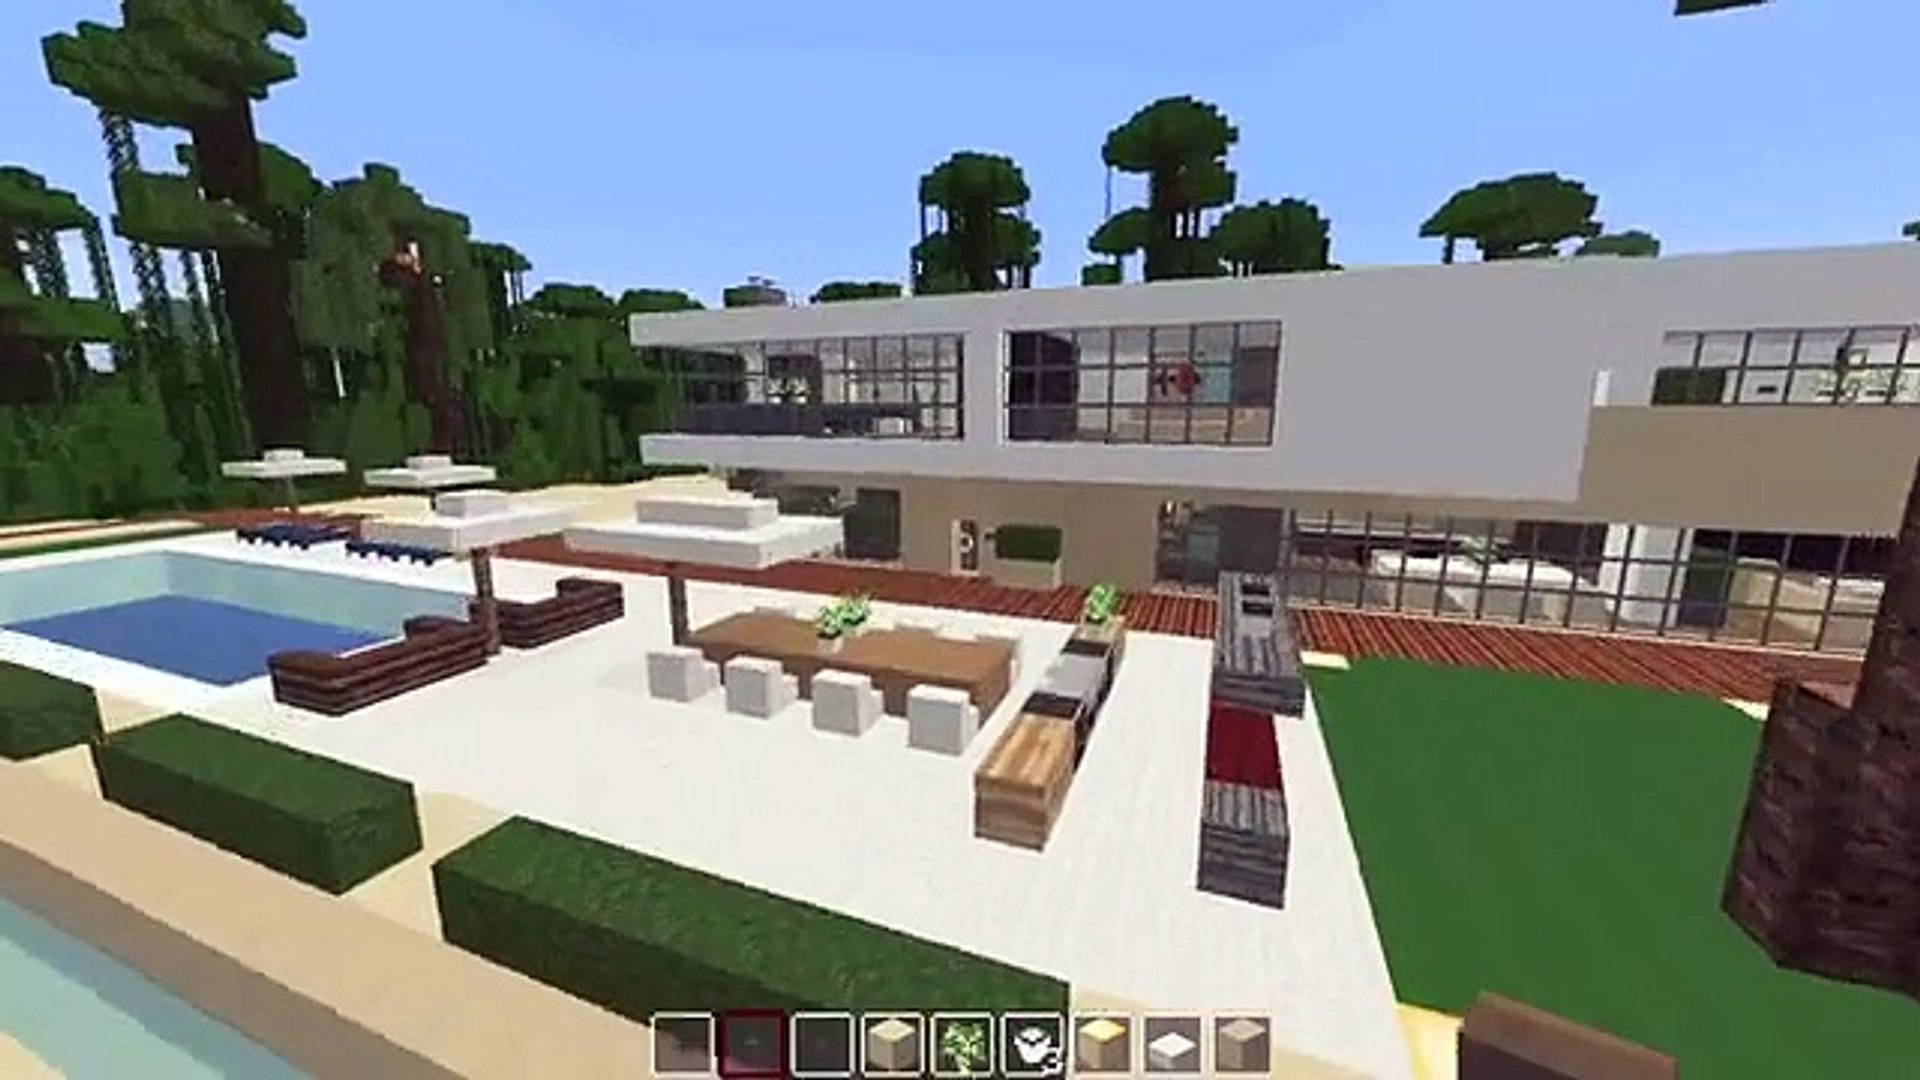 Minecraft Modern Stylish Beach House Tour Tutorial How To Build Video Dailymotion